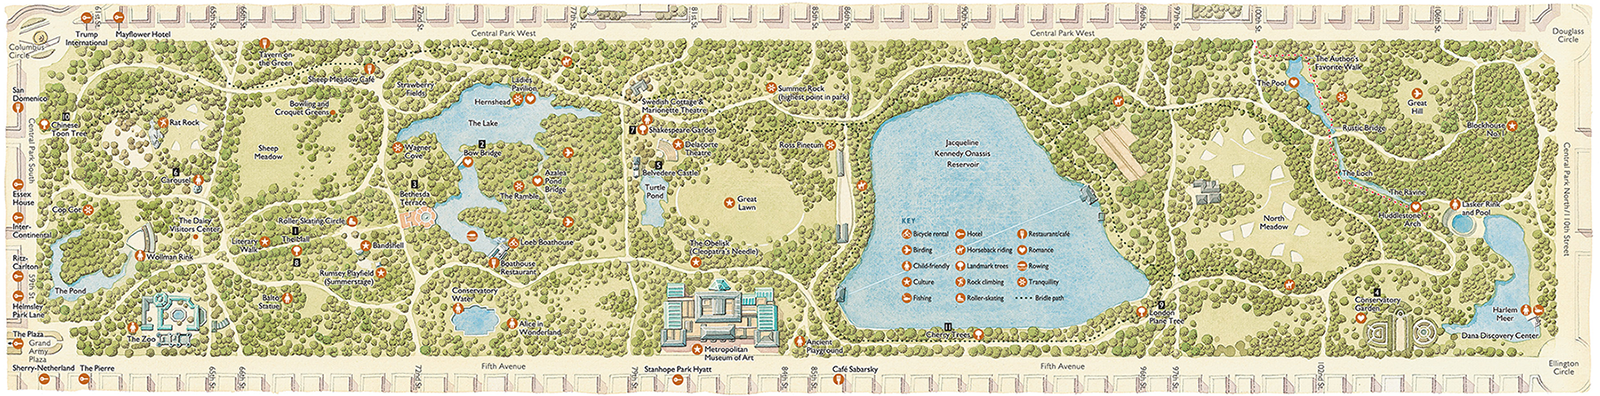 Central-Park-Map.png